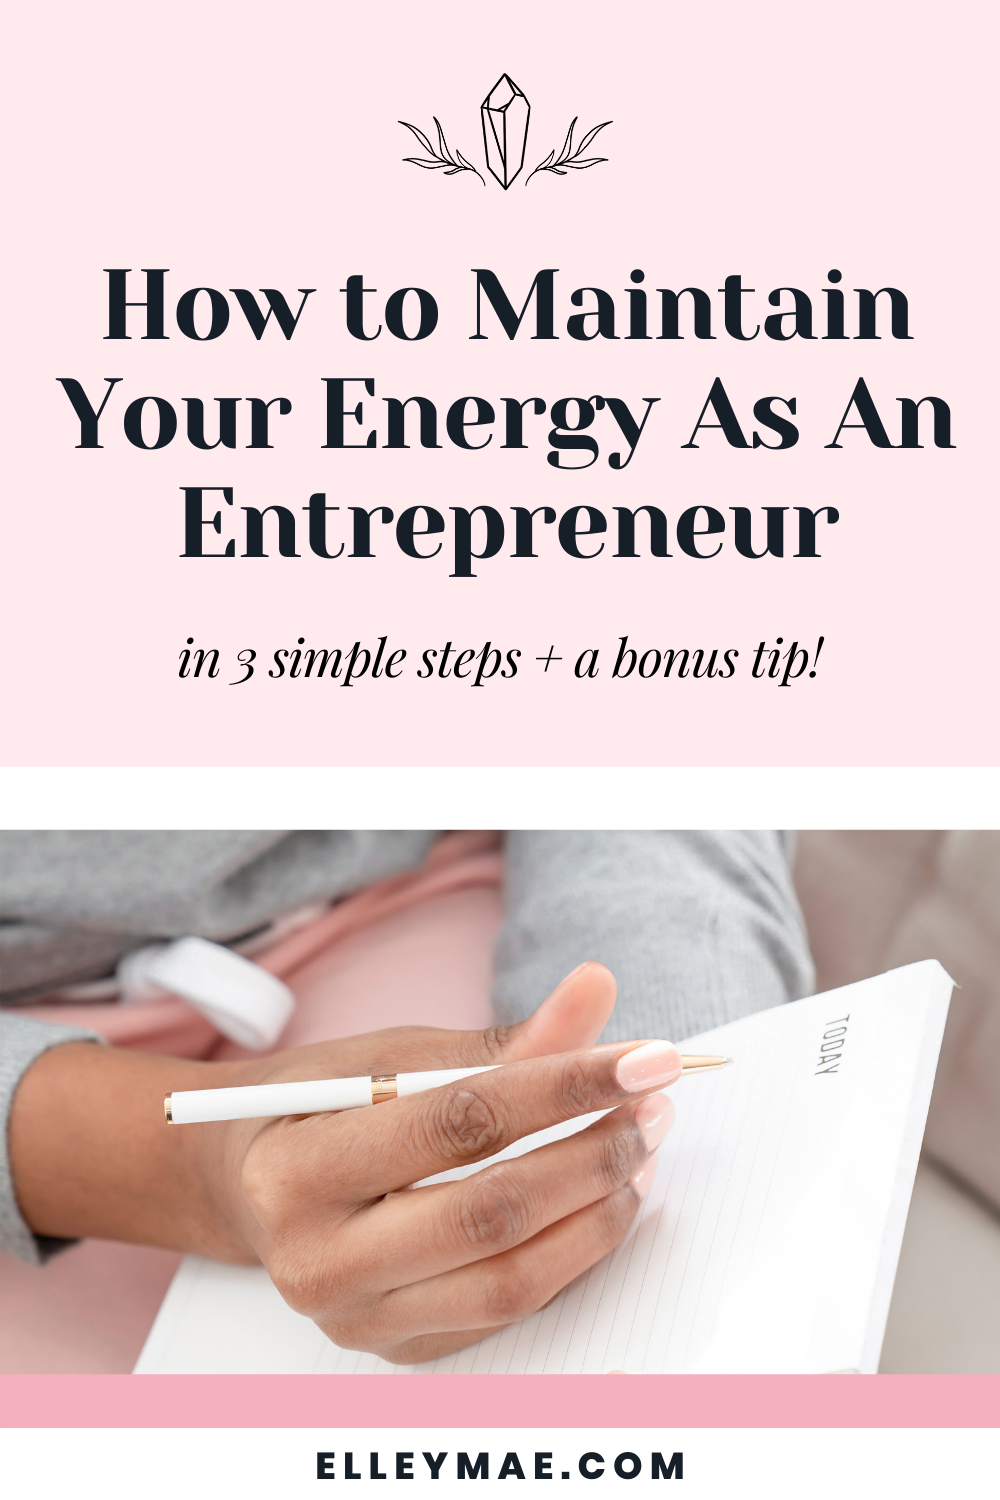 058. Maintaining Your Energy & Motivation As An Entrepreneur